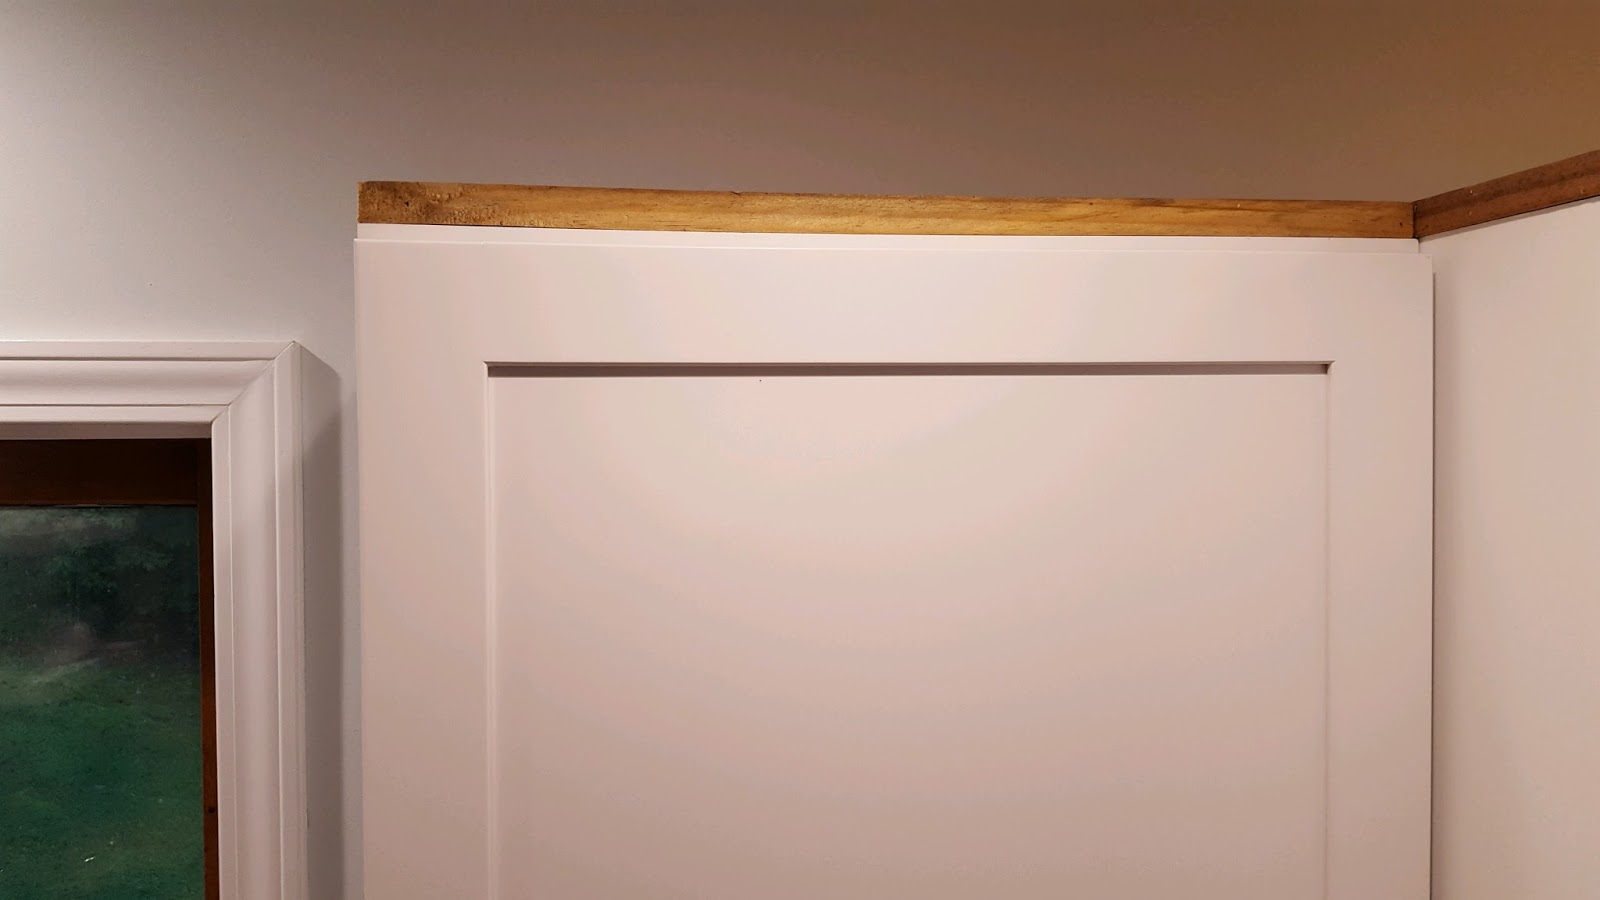 How To Install Kitchen Cabinet Crown Molding How To Install Crown Molding On Full Overlay Cabinets